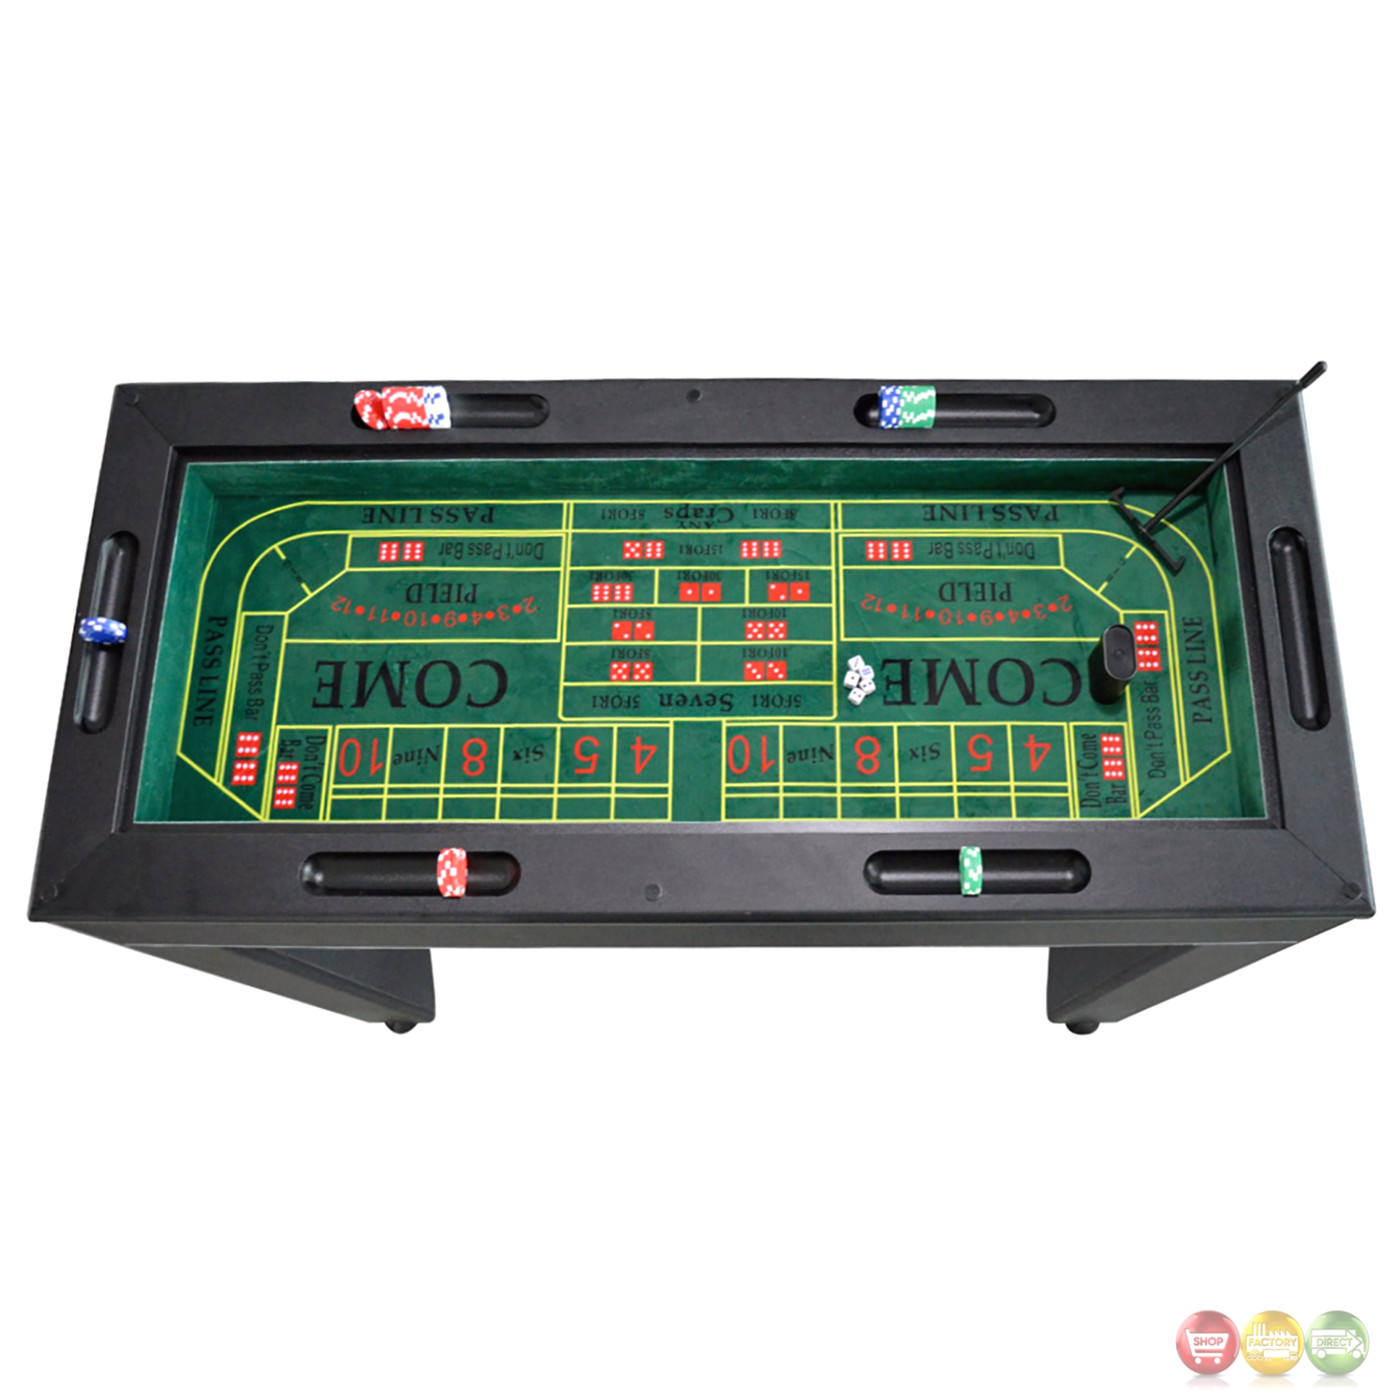 monte carlo 4-in-1 casino game table